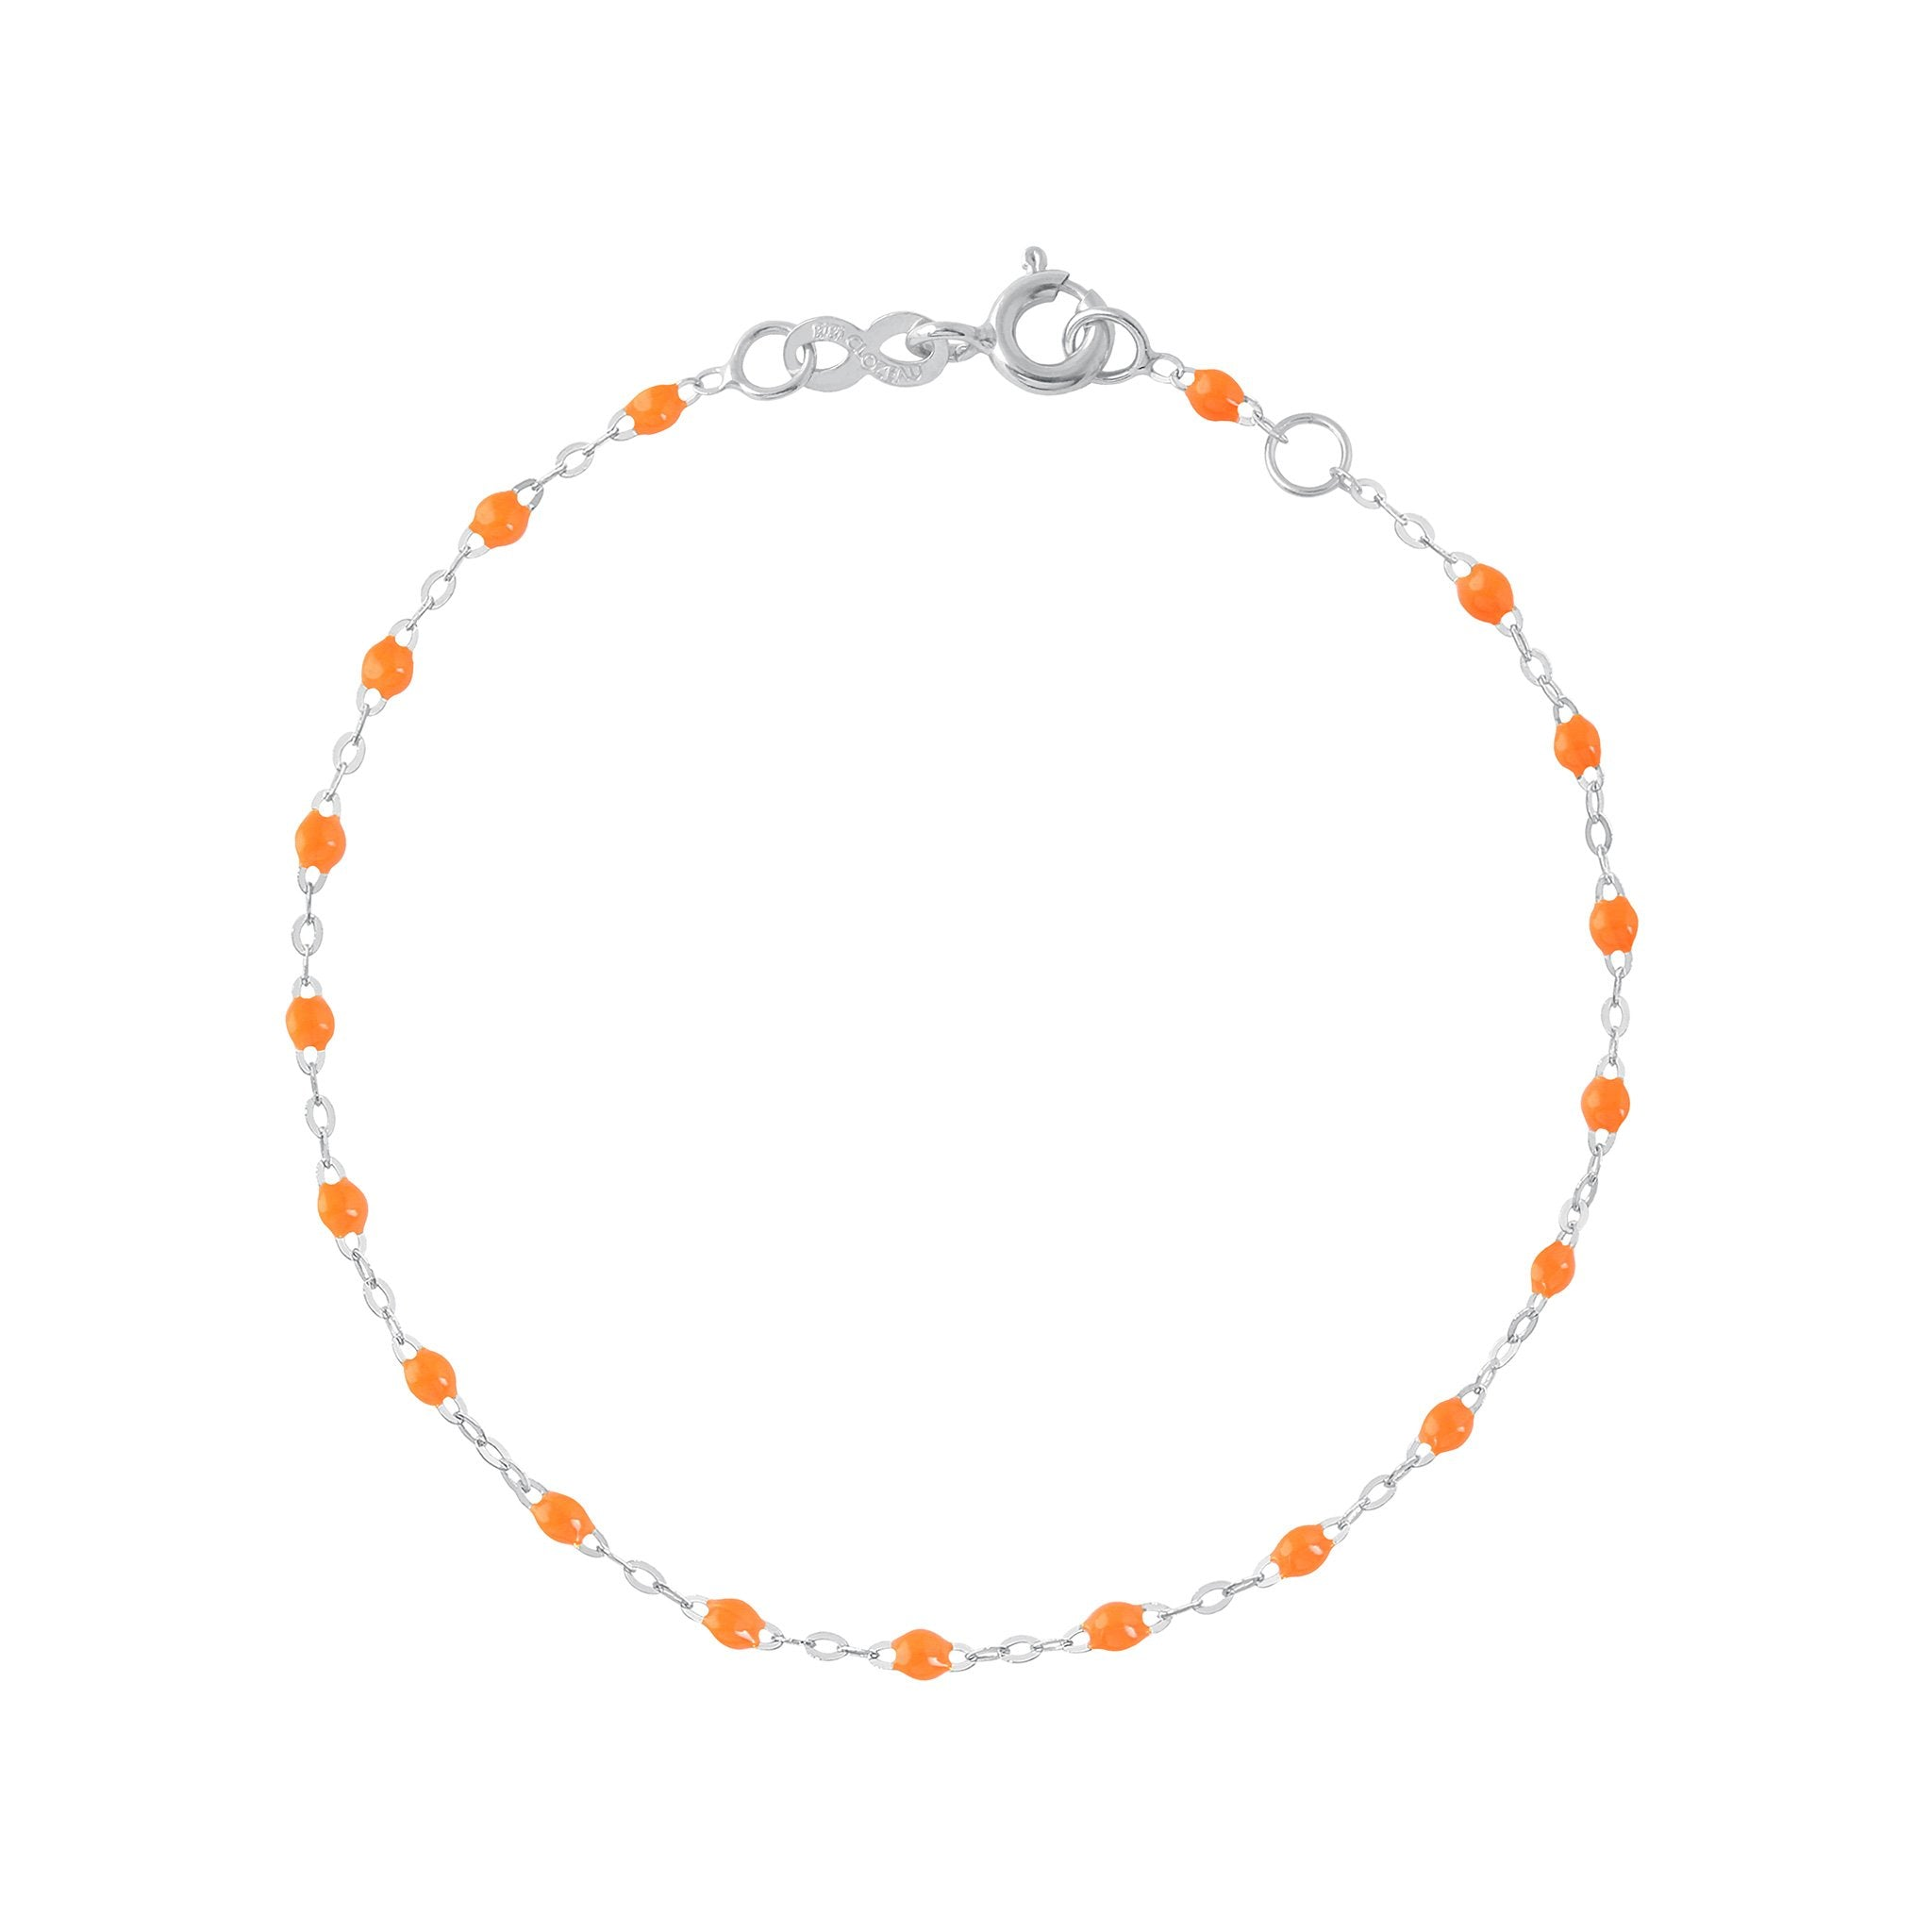 Gigi Clozeau - Classic Gigi Orange bracelet, White Gold, 6.7